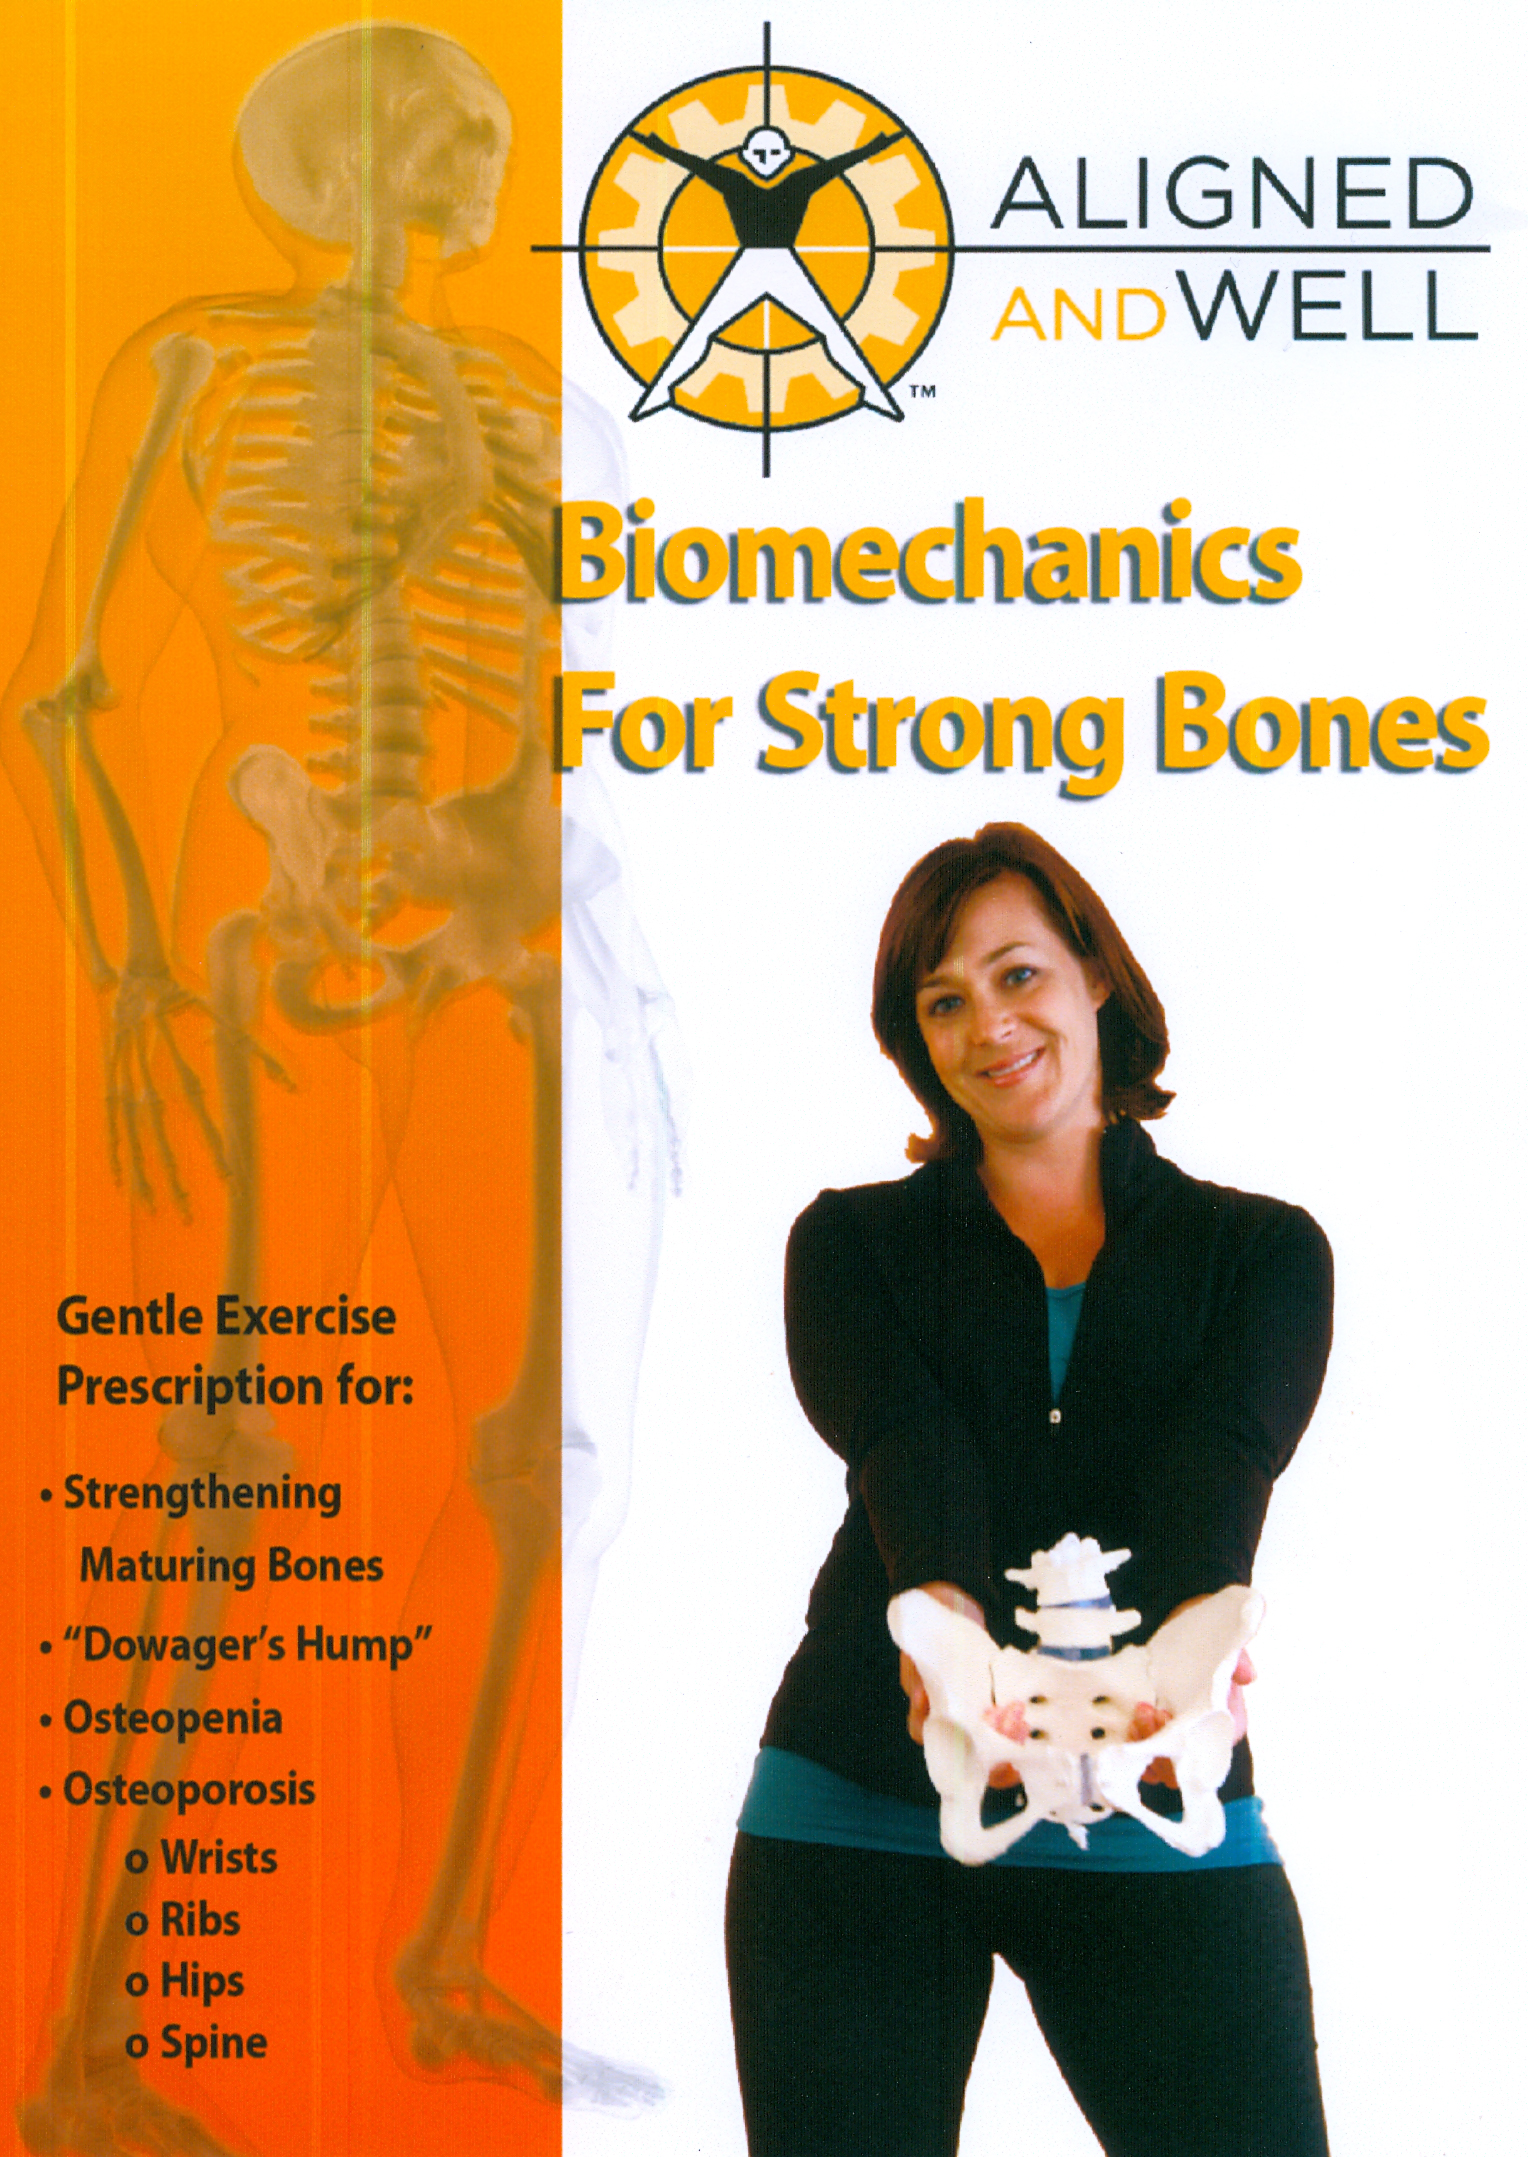 Aligned and Well: Biomechanics for Strong Bones